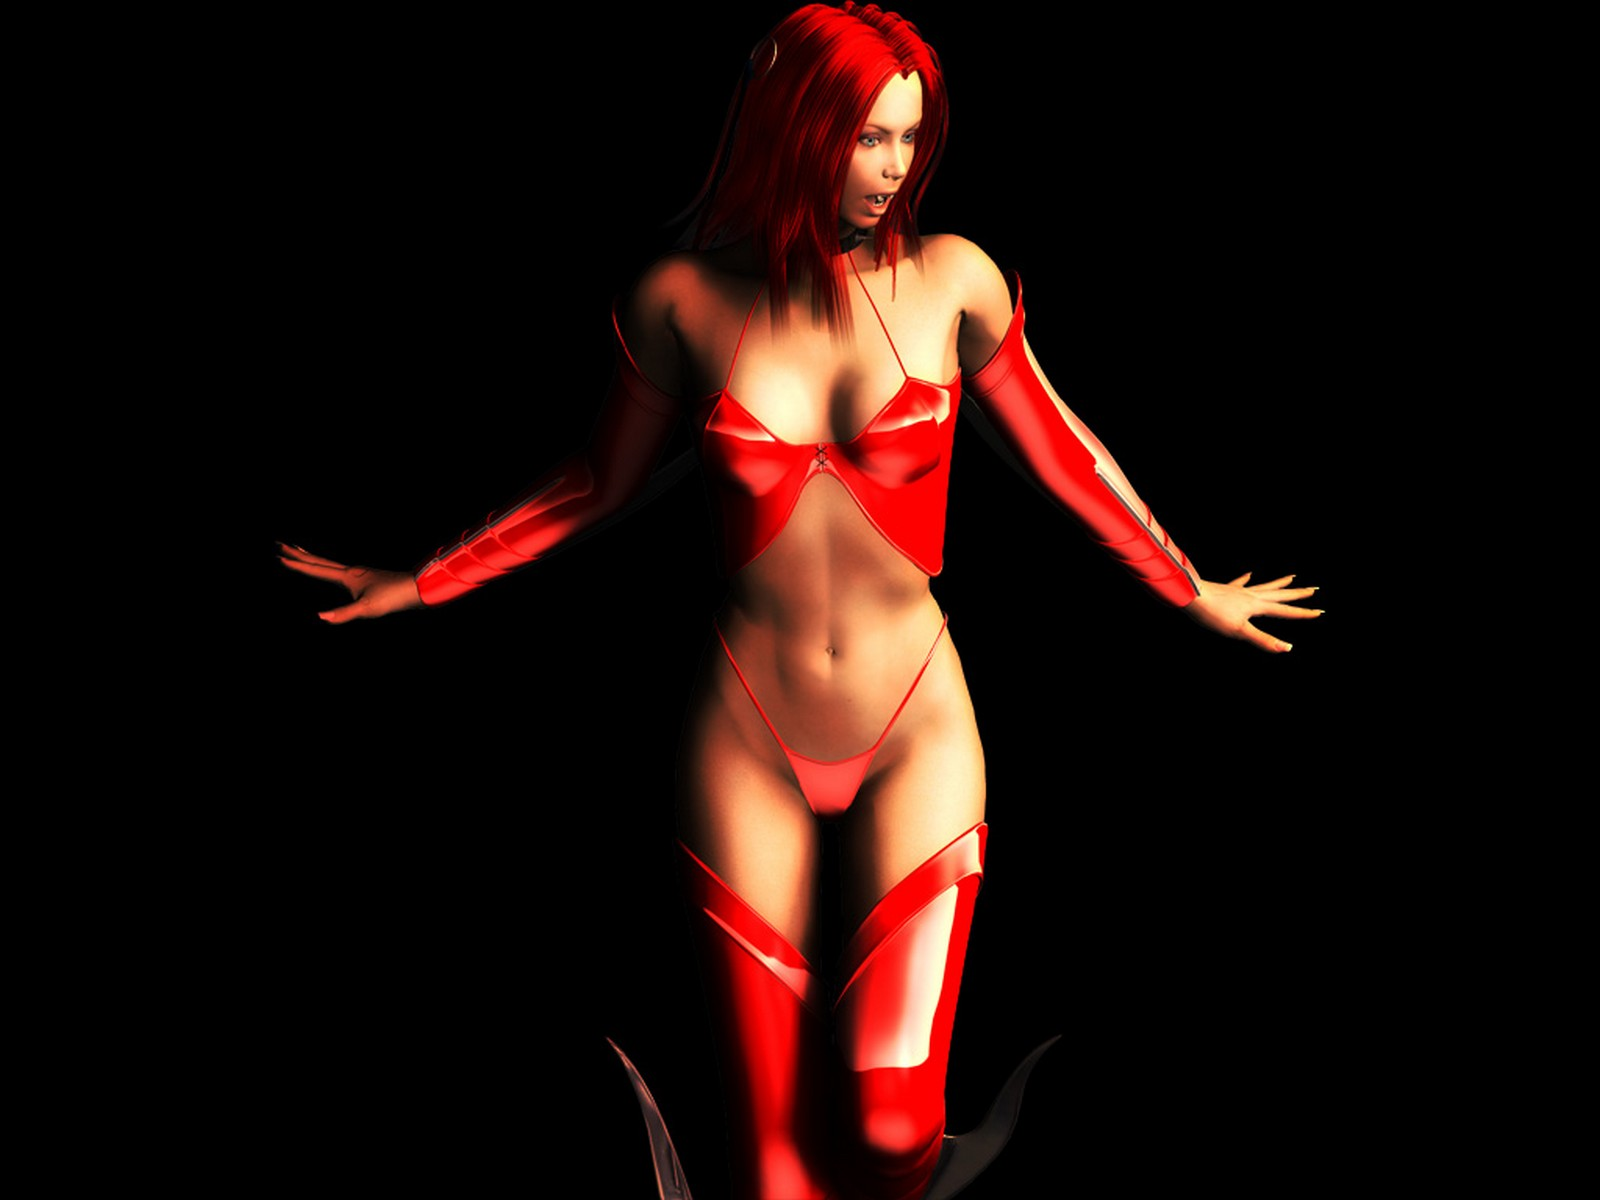 Bloodrayne 2 fuck patch nudes sexe girlfriend